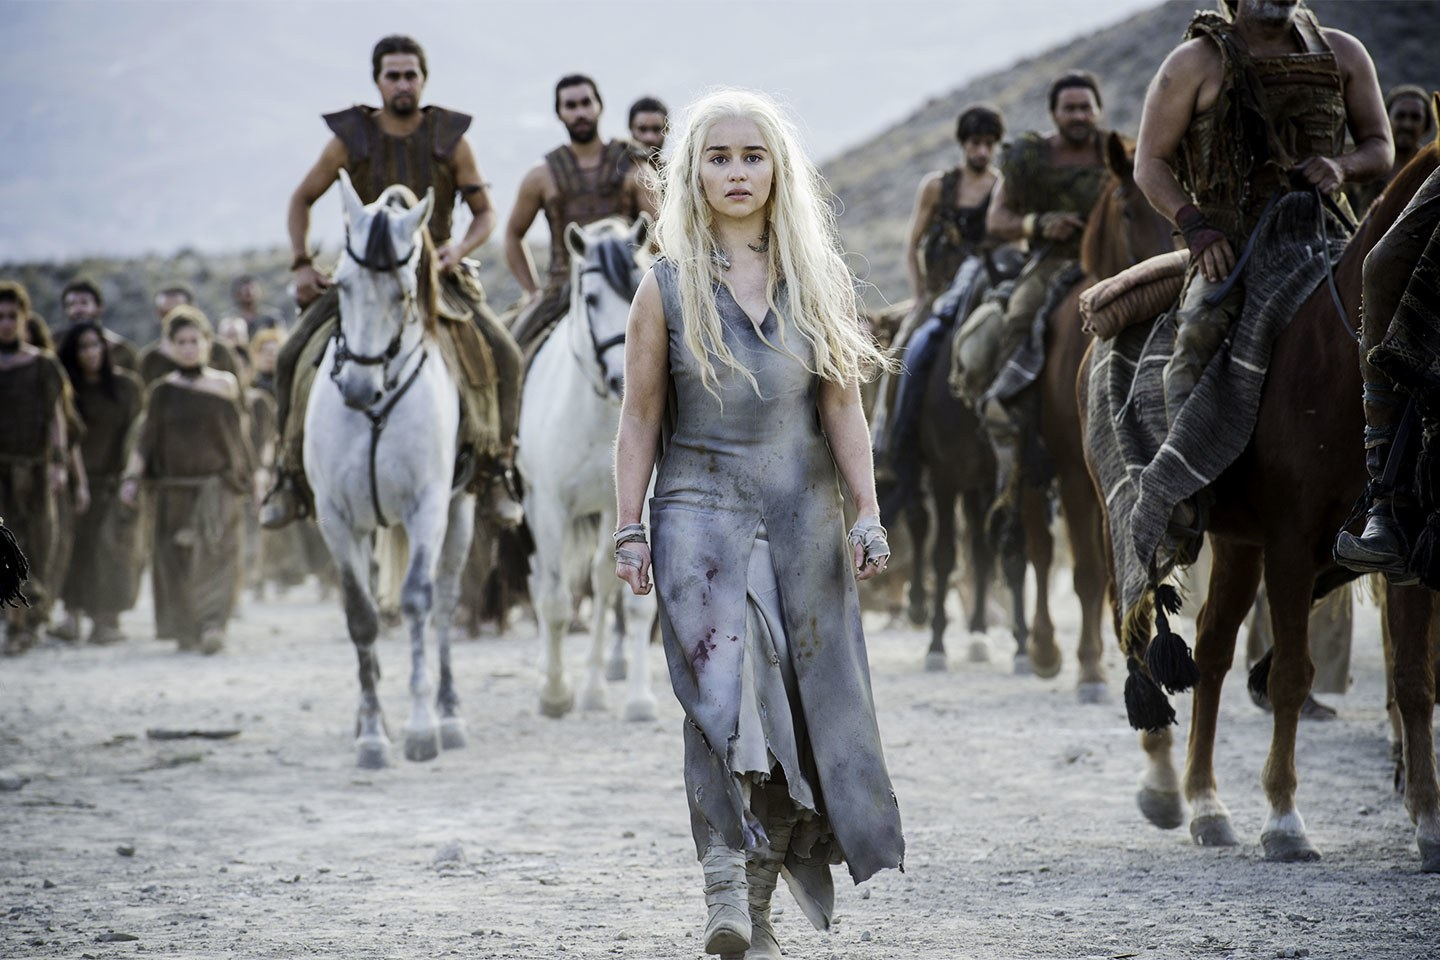 U.S.  prosecutors charge Iranian in 'Game of Thrones' hack (TWX, T)